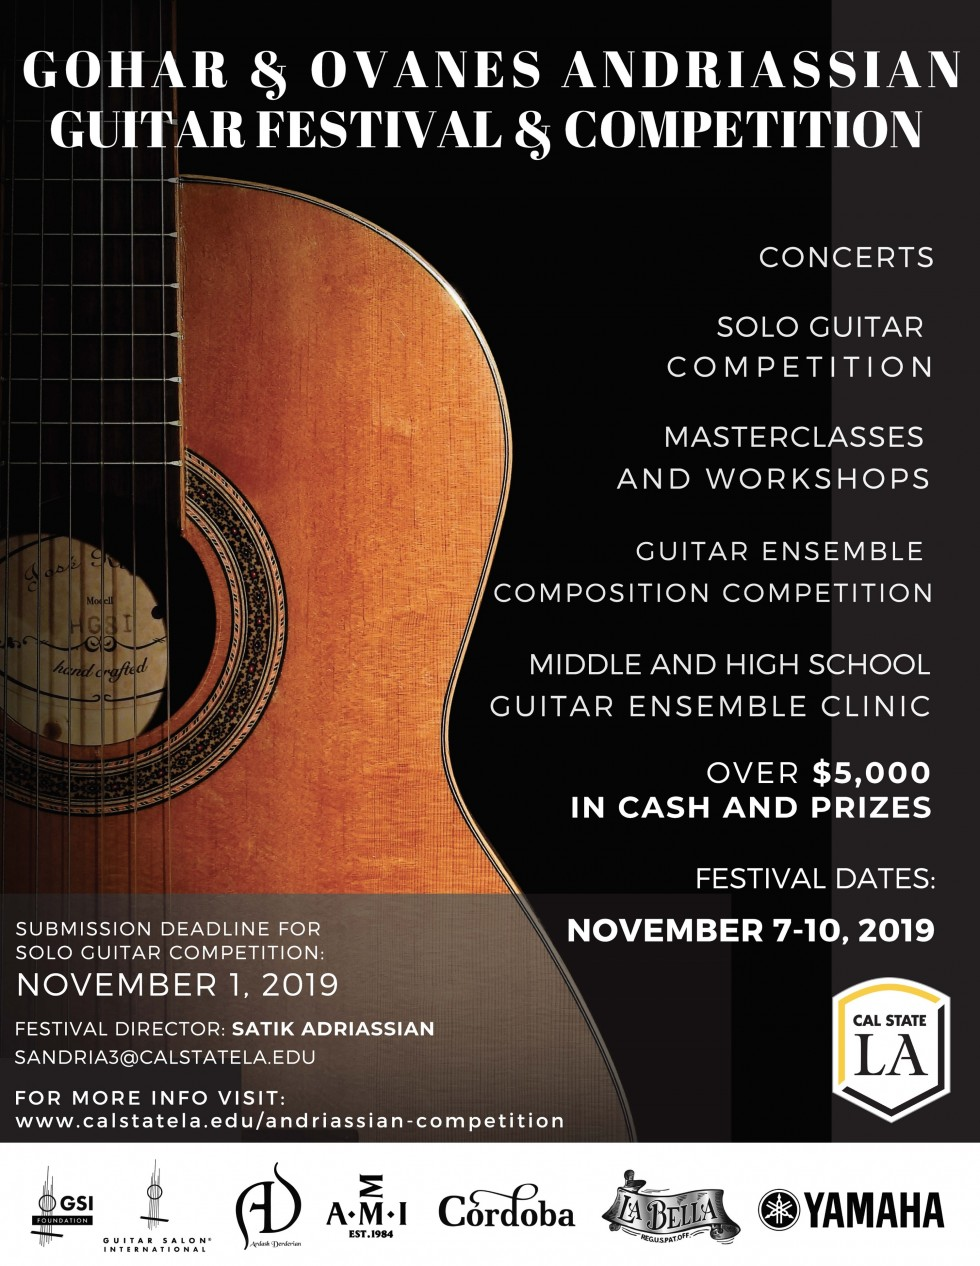 Gohar and Ovanes Andriassian Classical Guitar Competition